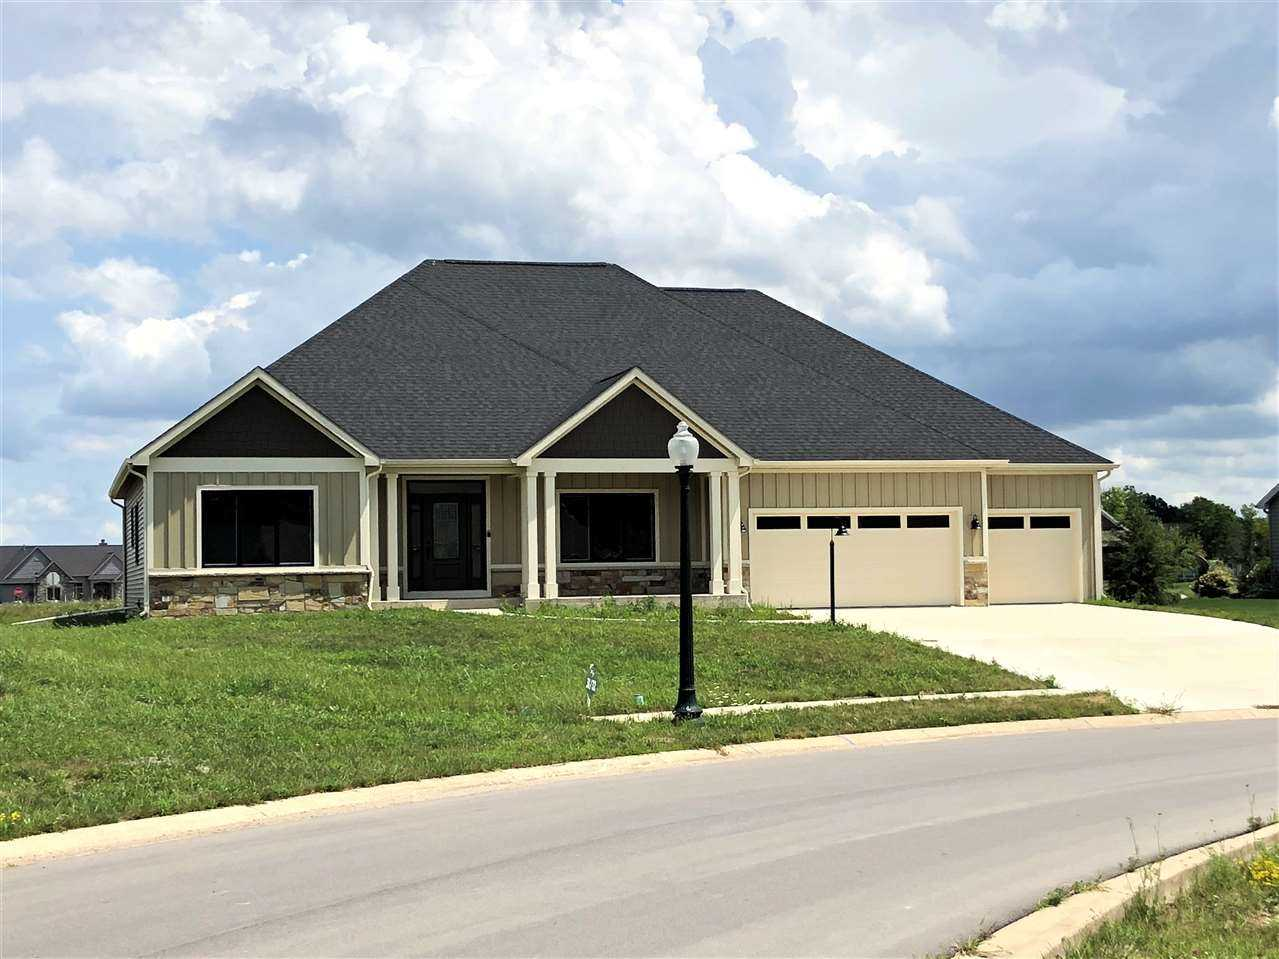 15208 Candlestick Ct Fort Wayne, IN 46814 | MLS 201818254 Photo 1